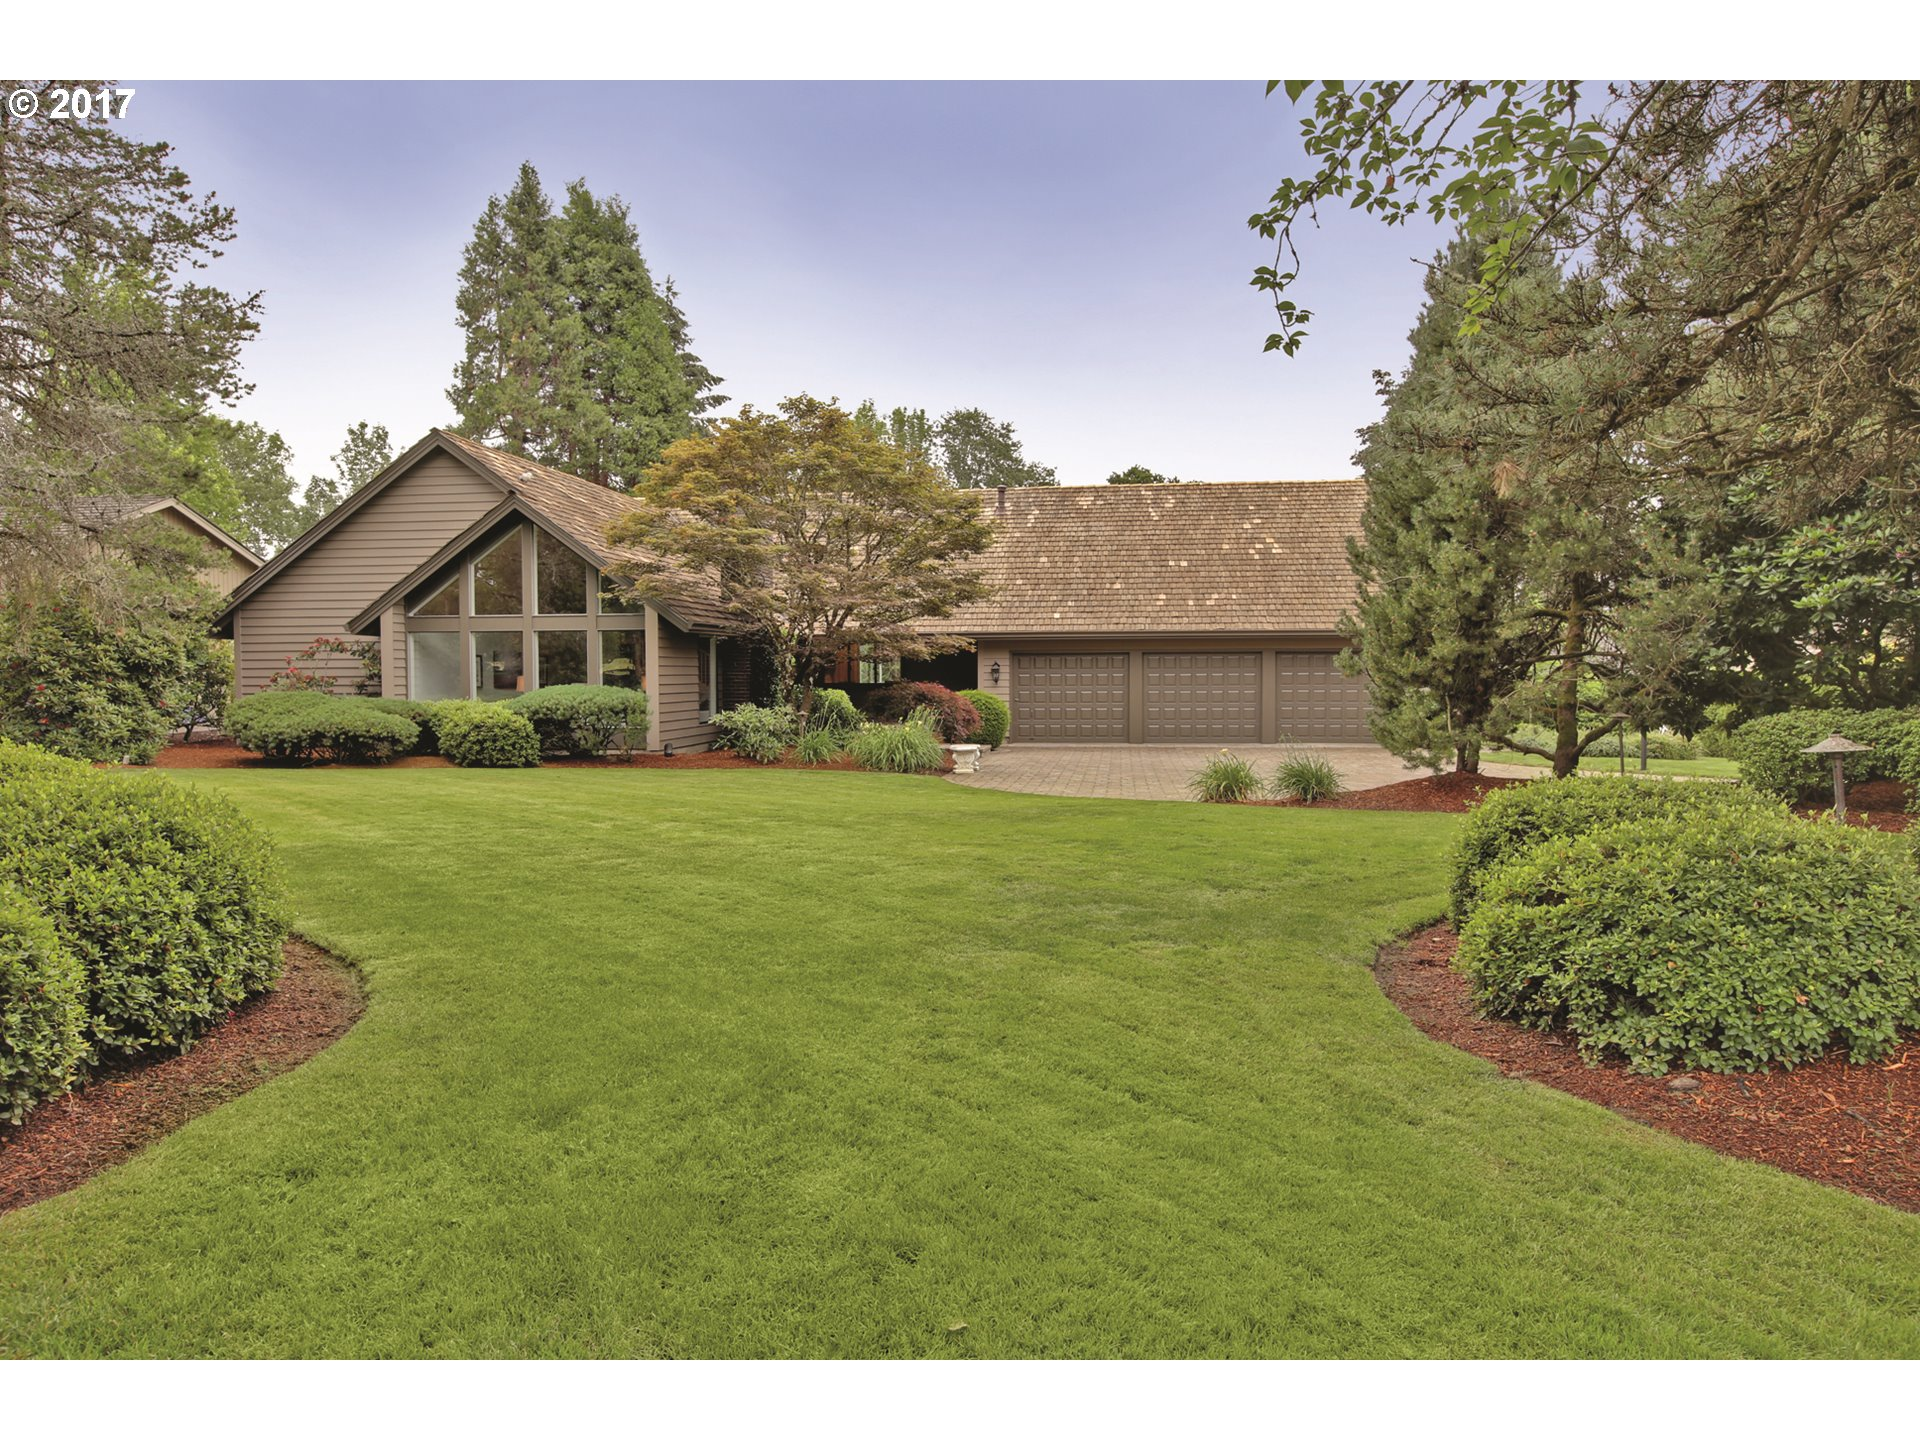 2725 NW CIRCLE A DR, Portland OR 97229